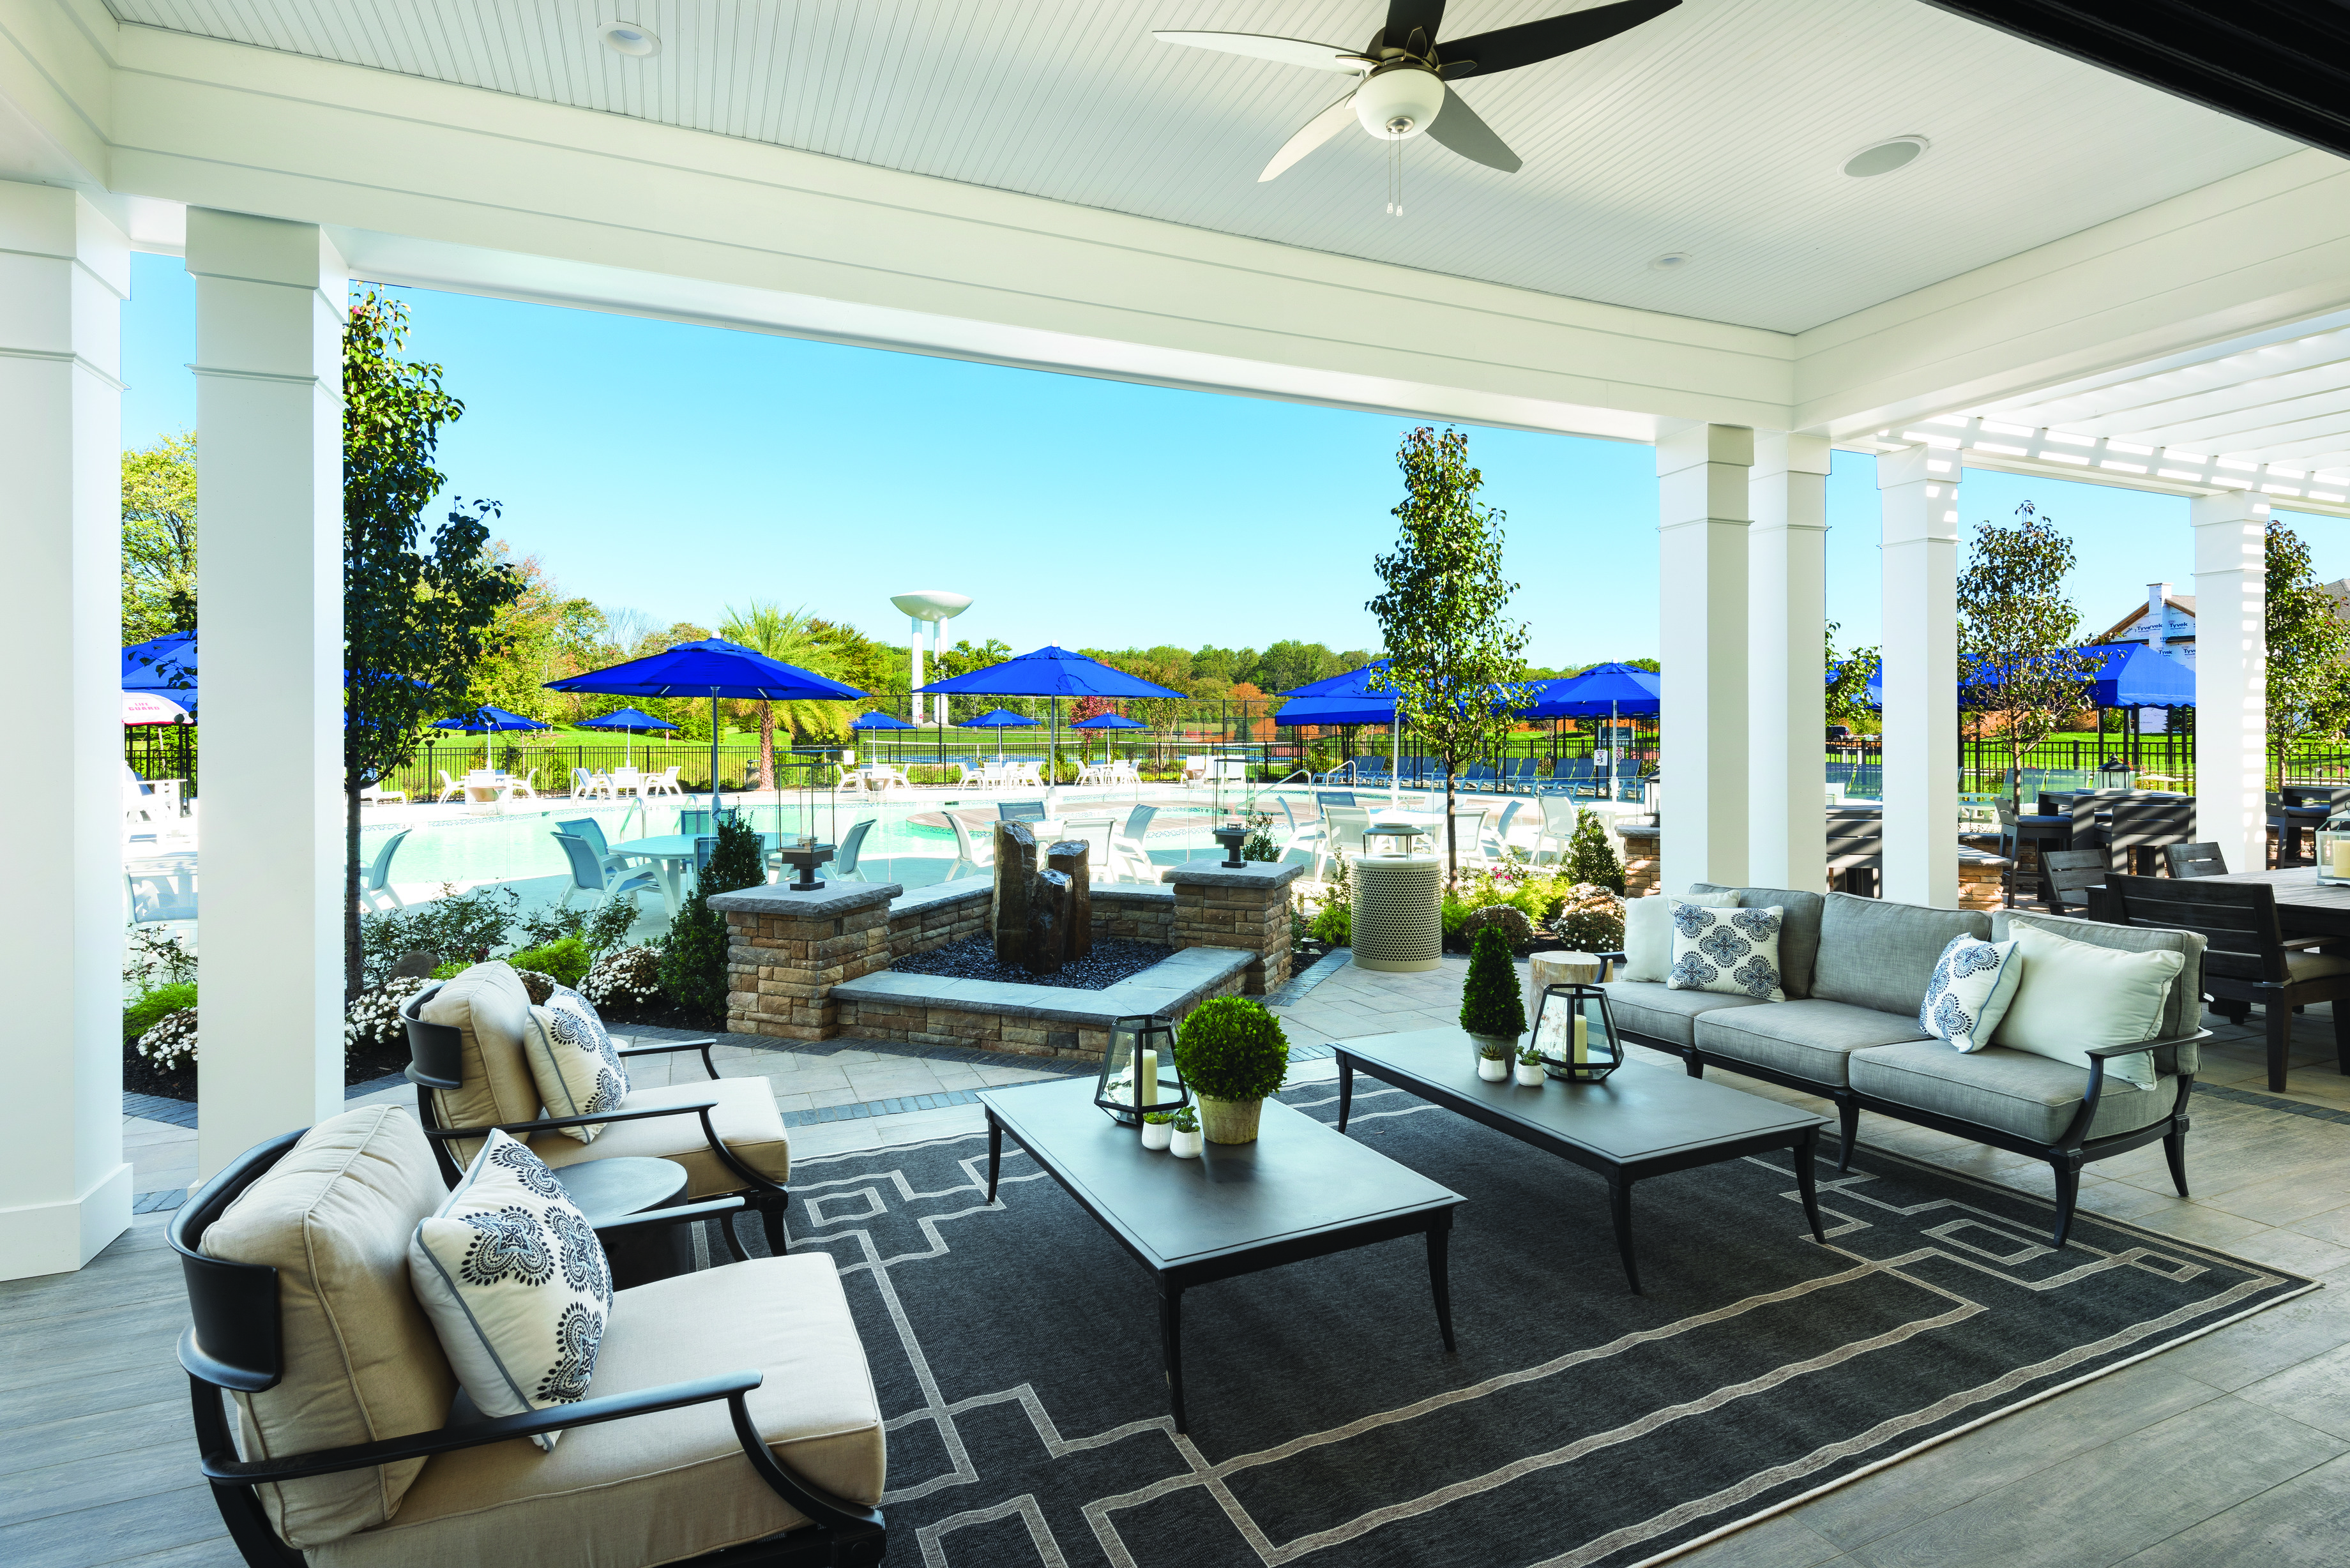 Pool and seating area in an active living community.